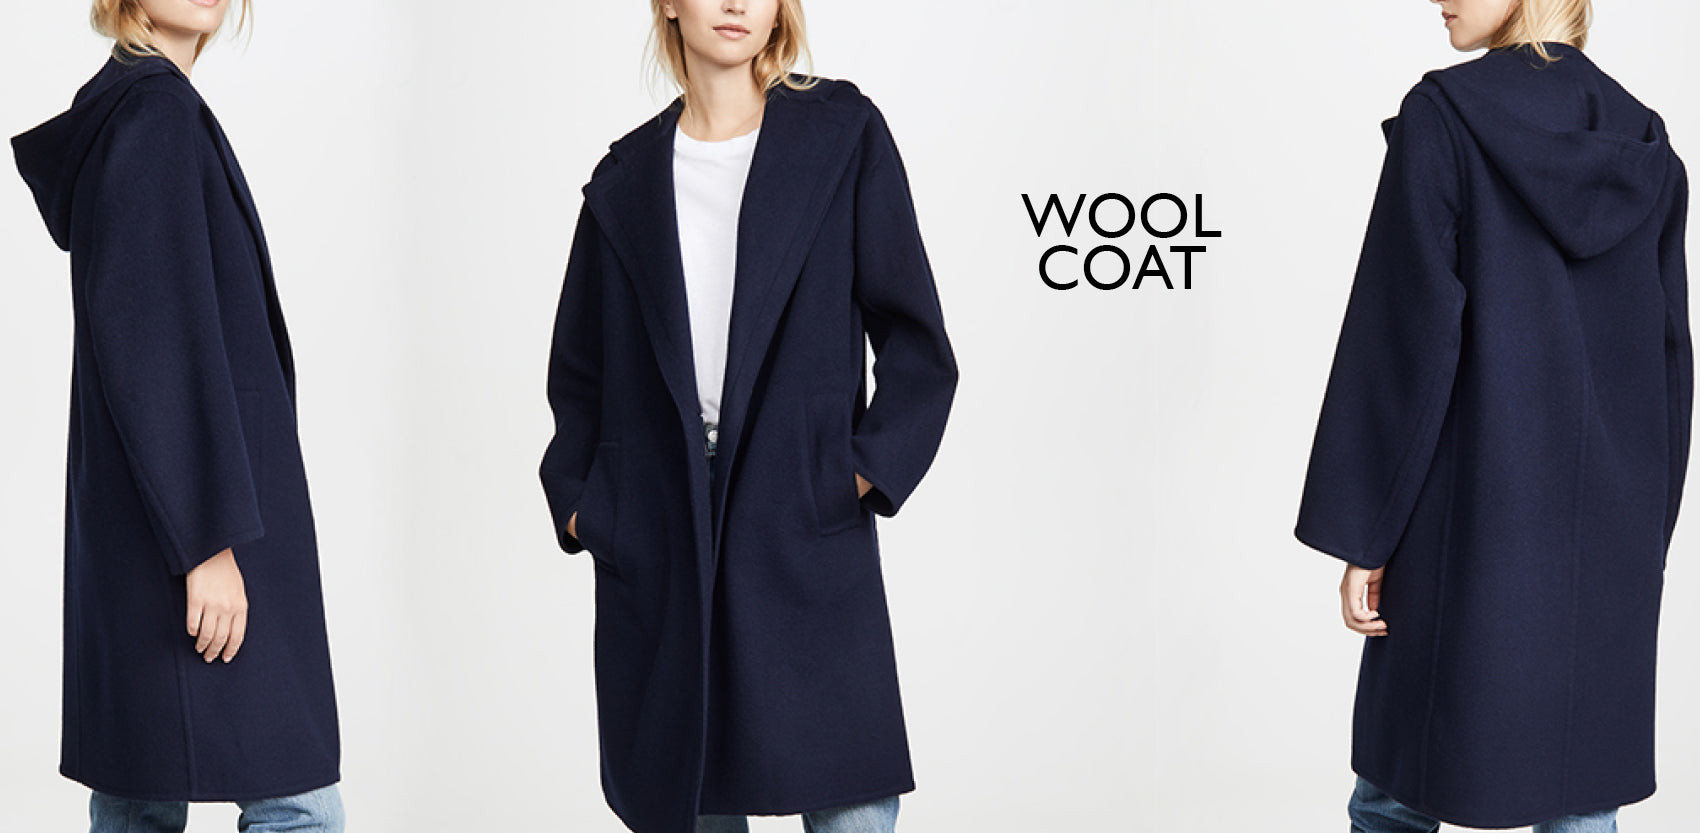 Wool coat - Capsule wardrobe